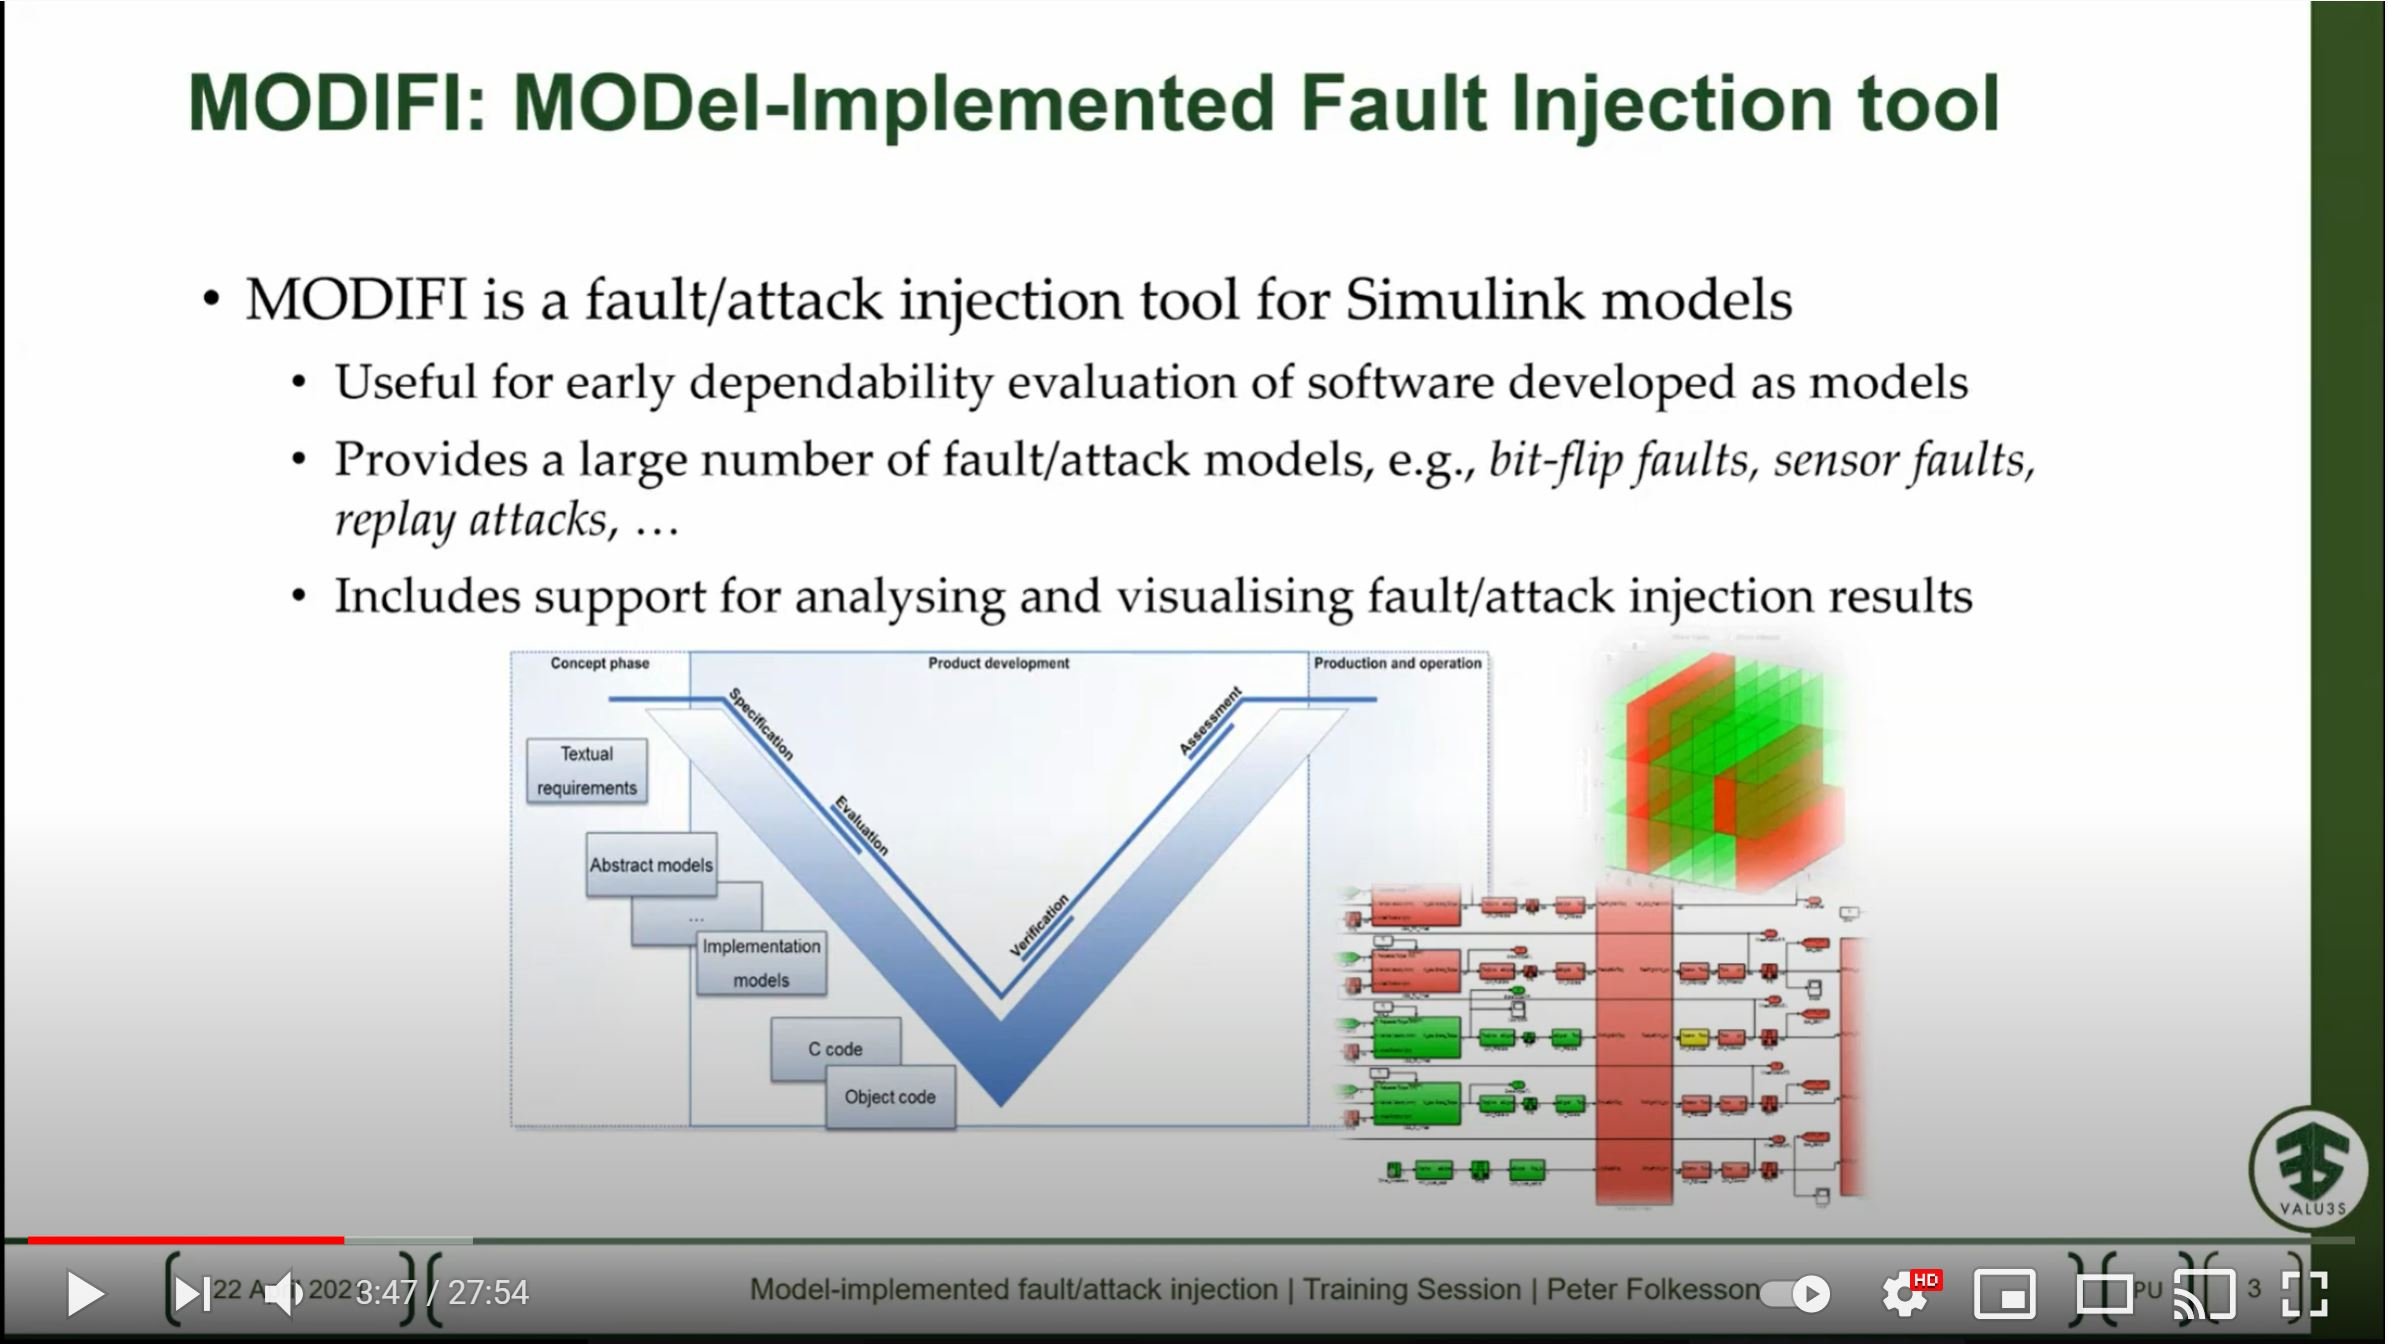 16842 Model inplemented fault injection tool